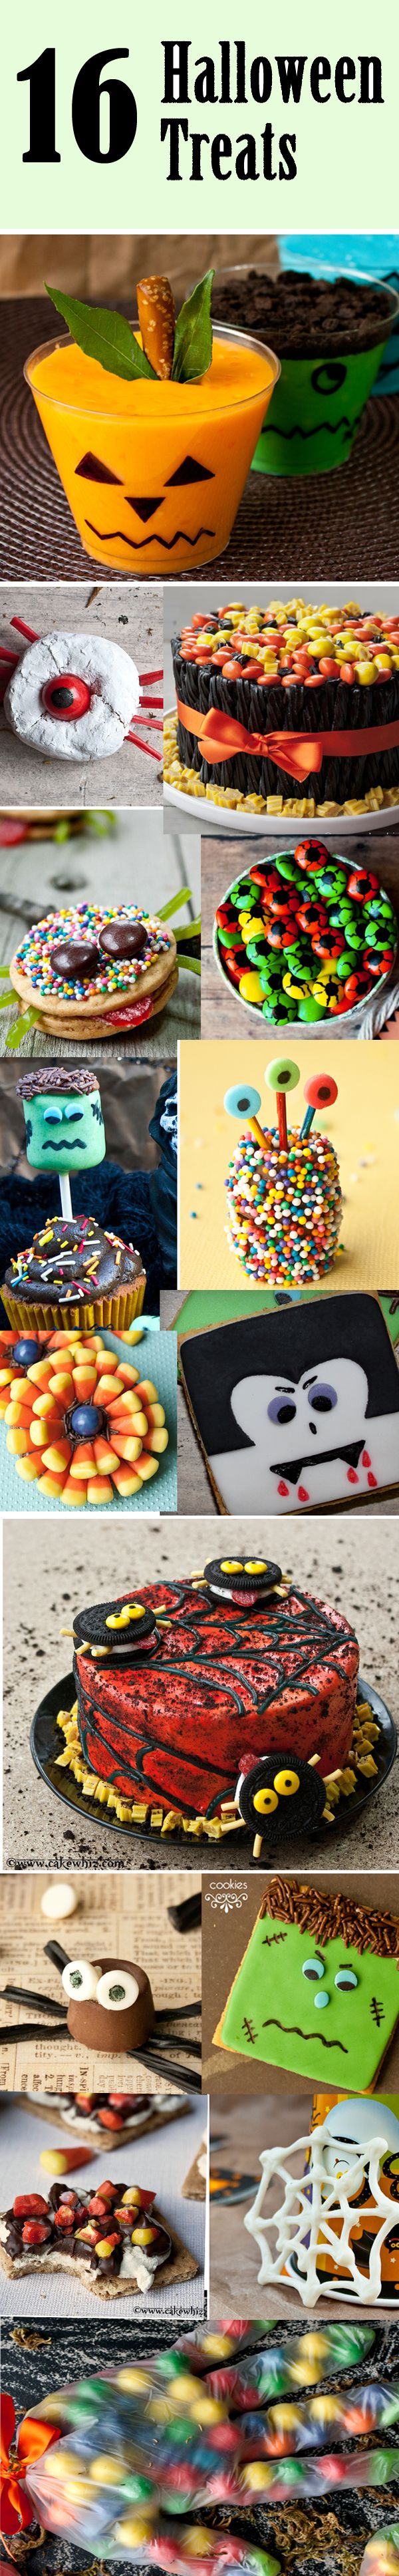 16 fun HALLOWEEN treats to inspire you. There is something in here for everyone, ranging from spooky cakes, cupcakes, cool cakes and so much more! From cakewhiz.com